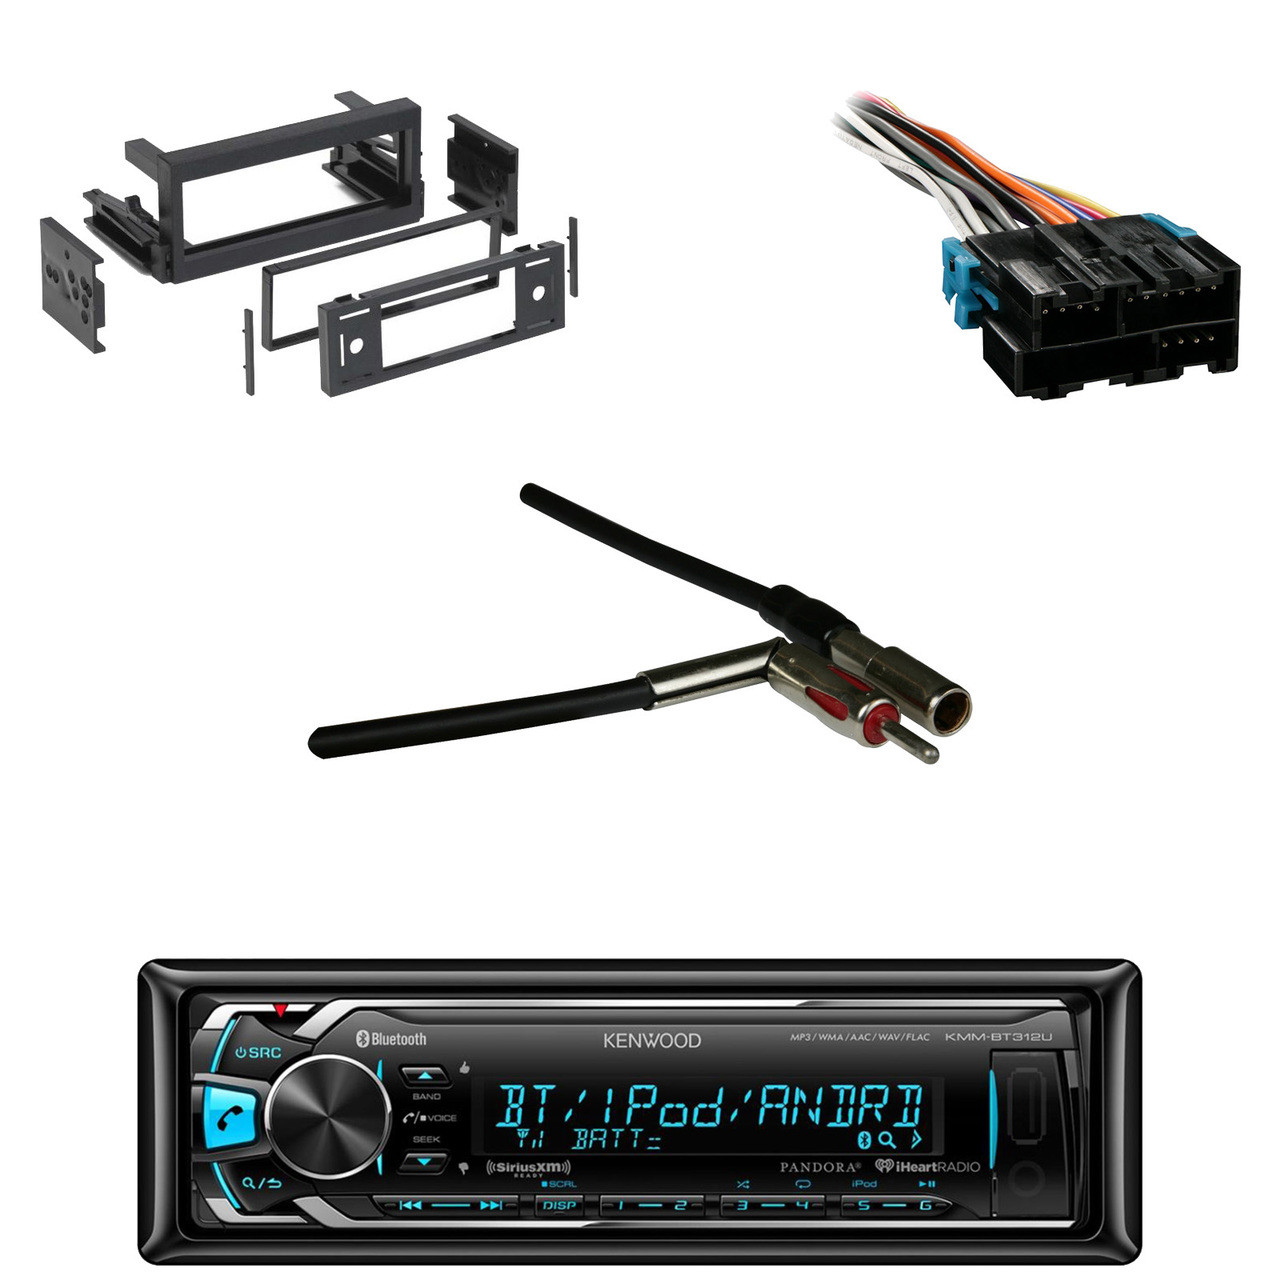 Metra 70 1858 Radio Wiring Harness For Gm 88 05 Road Kenwood Car Stereo Adapter